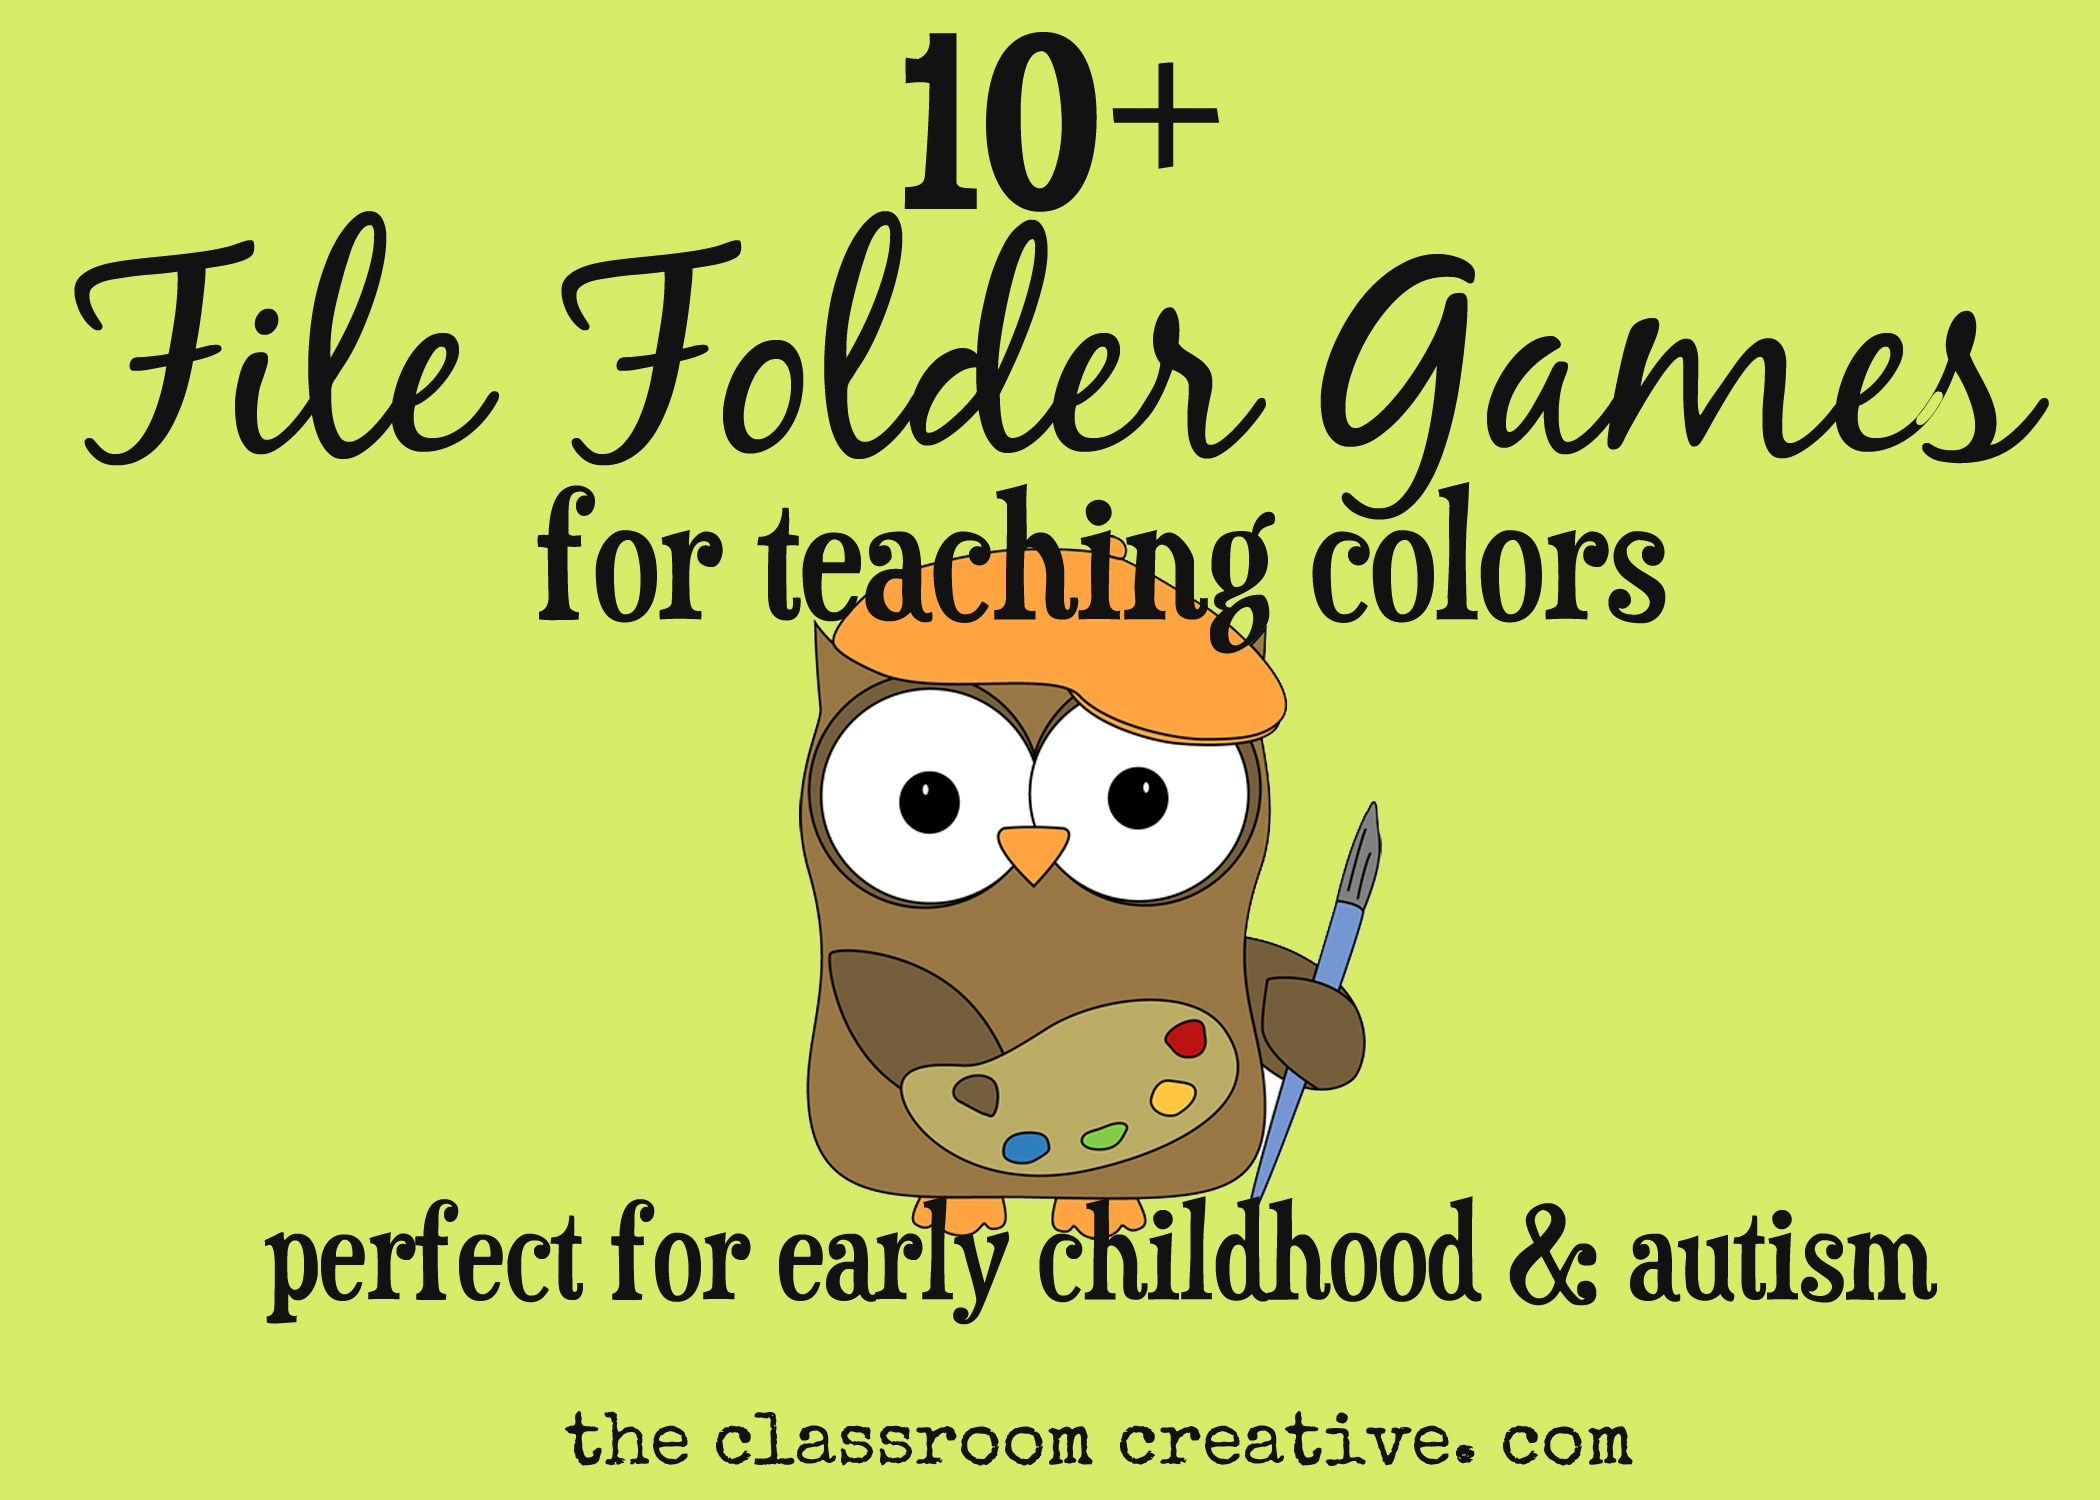 File Folder Games For Teaching Colors - Free Printable File Folder Games For Preschool